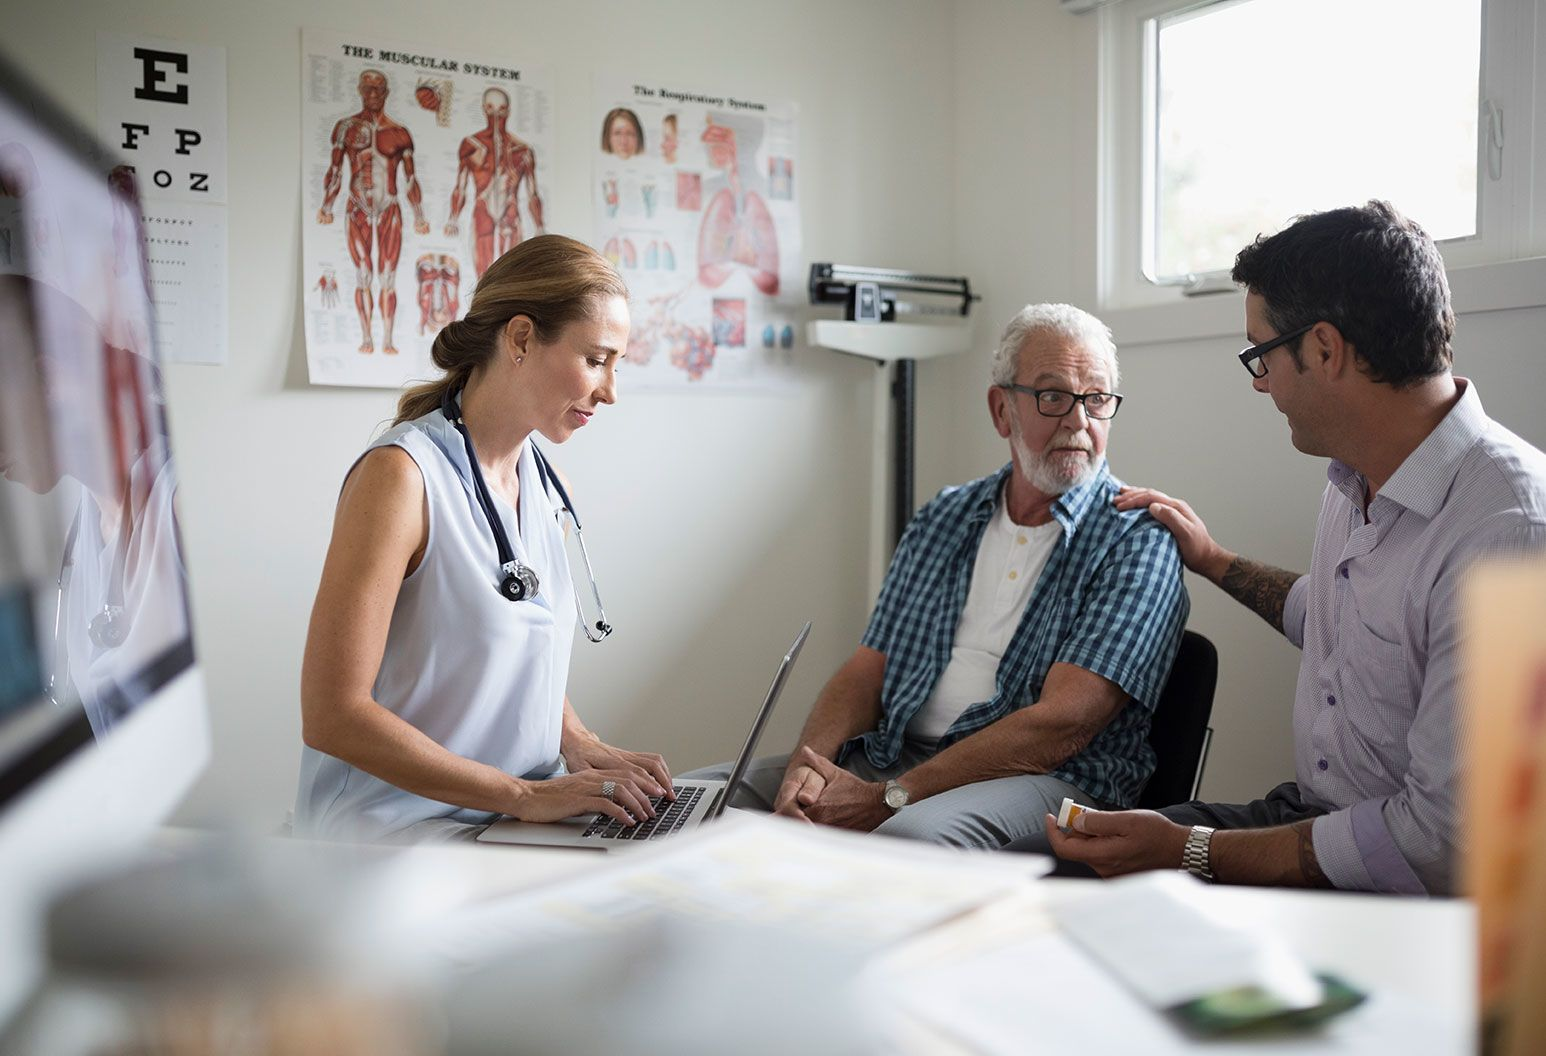 A female doctor sits with a laptop as she watches a comforting discussion between a n older man and a younger man. The men are both wearing similar glasses. They are all in a examination room filled with a medical scale, medical posters, and a cluttered d